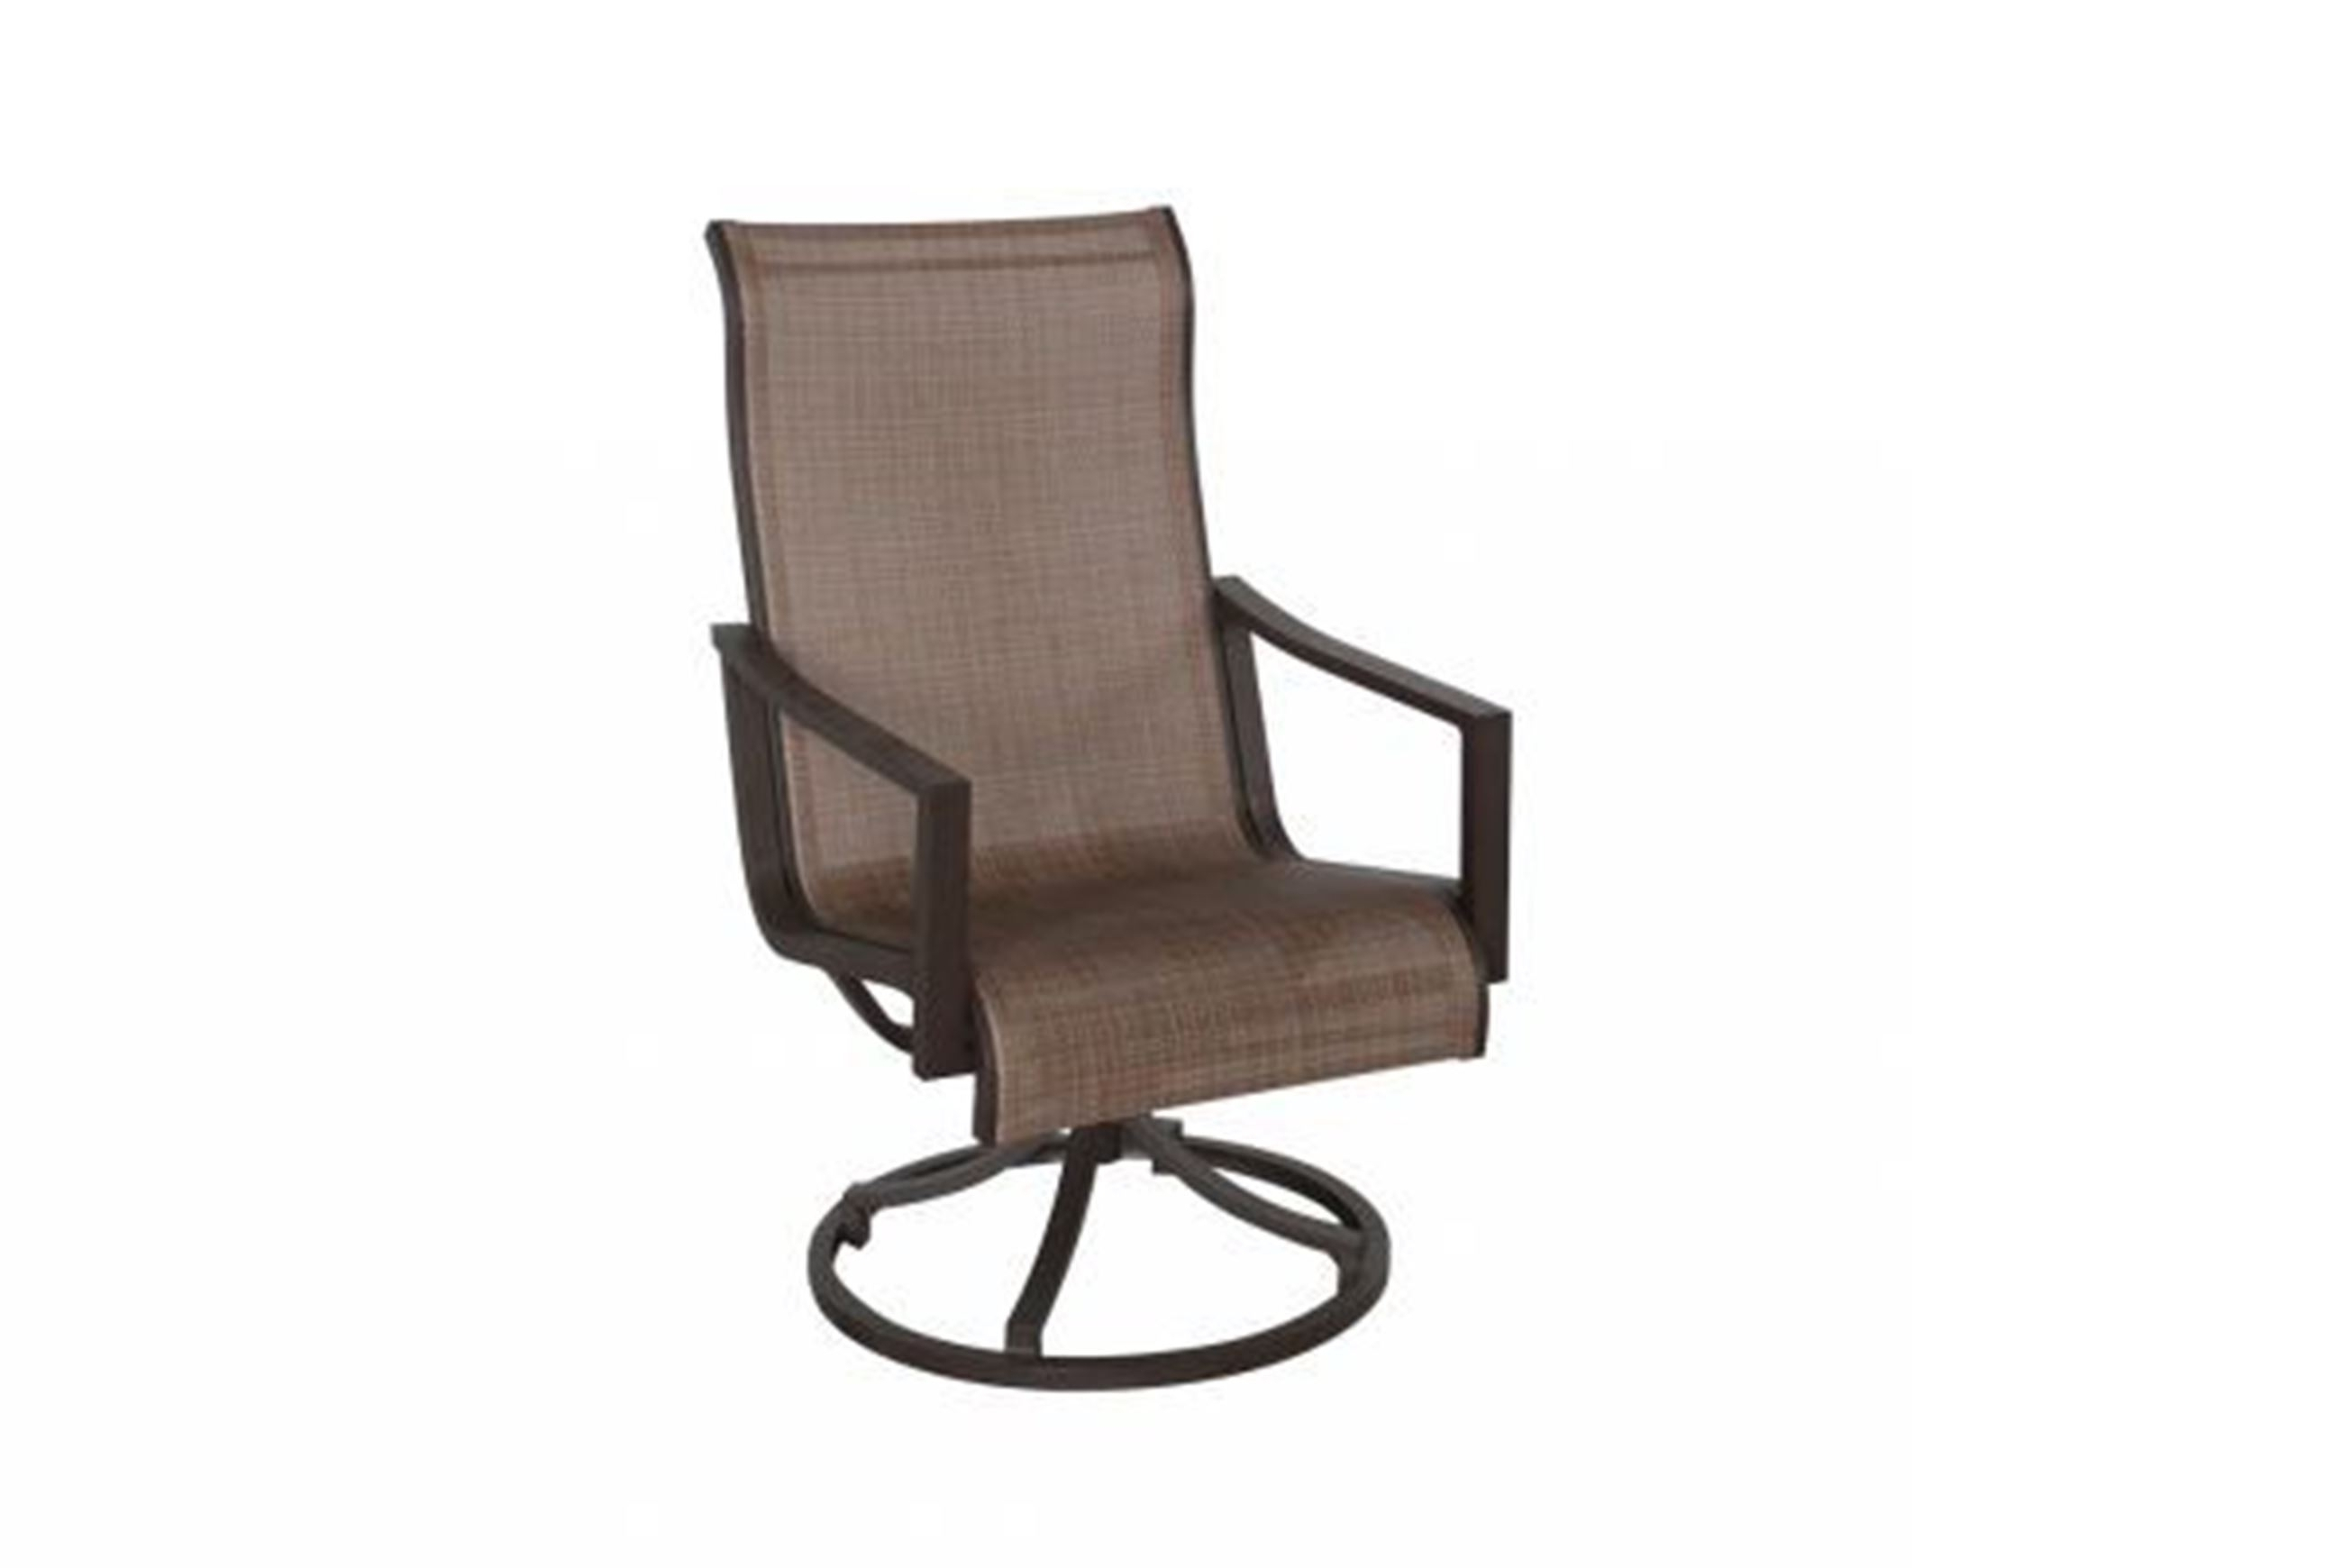 2nd Shade Patio Furniture (View 9 of 20)